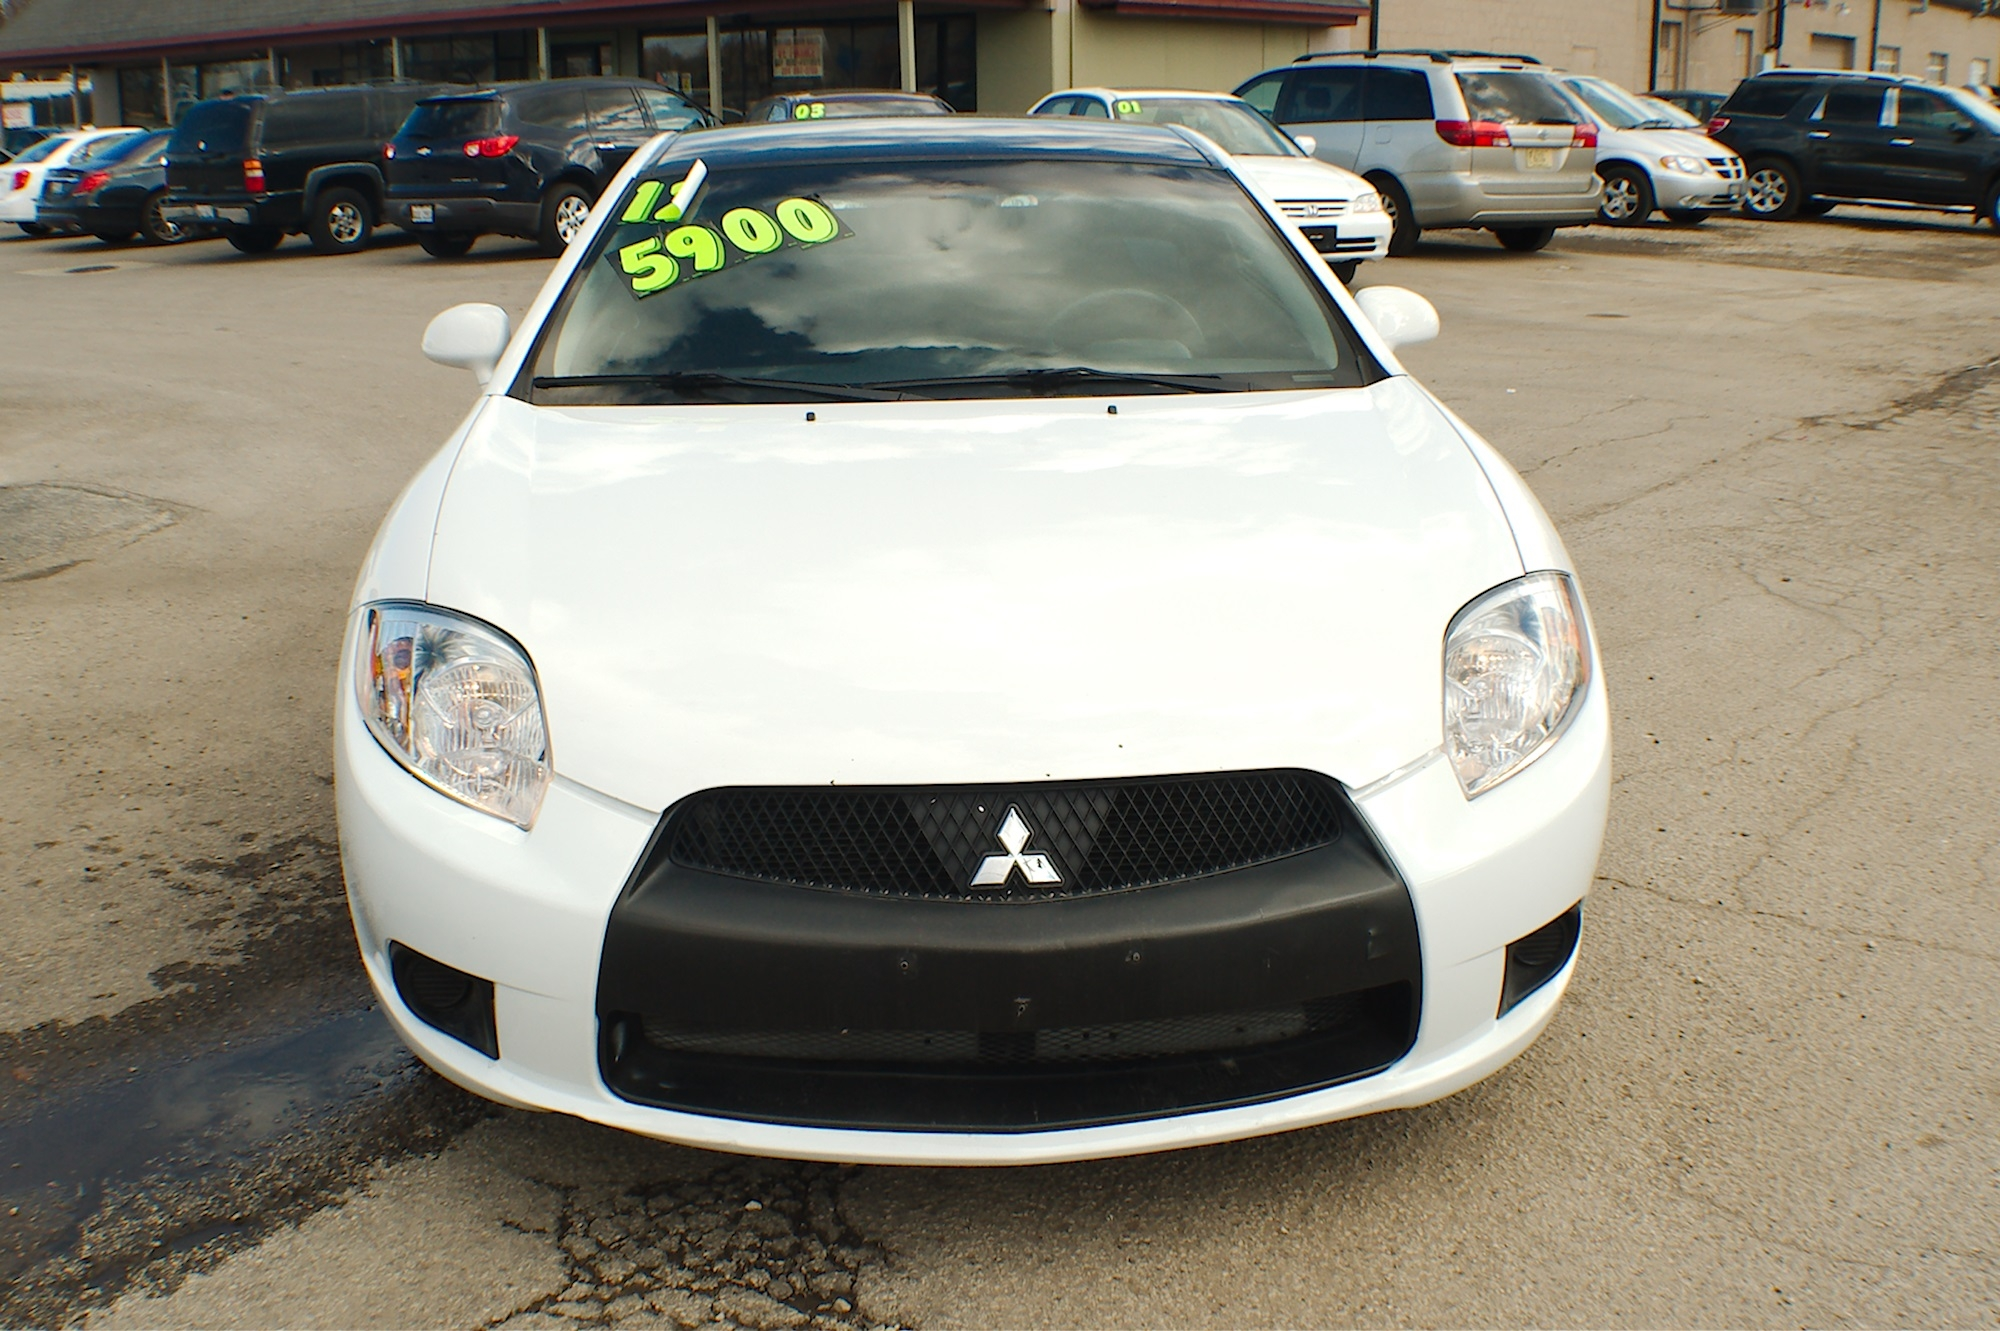 2012 Mitsubishi Eclipse White Coupe Used Car Sale Gurnee Kenosha Mchenry Chicago Illinois